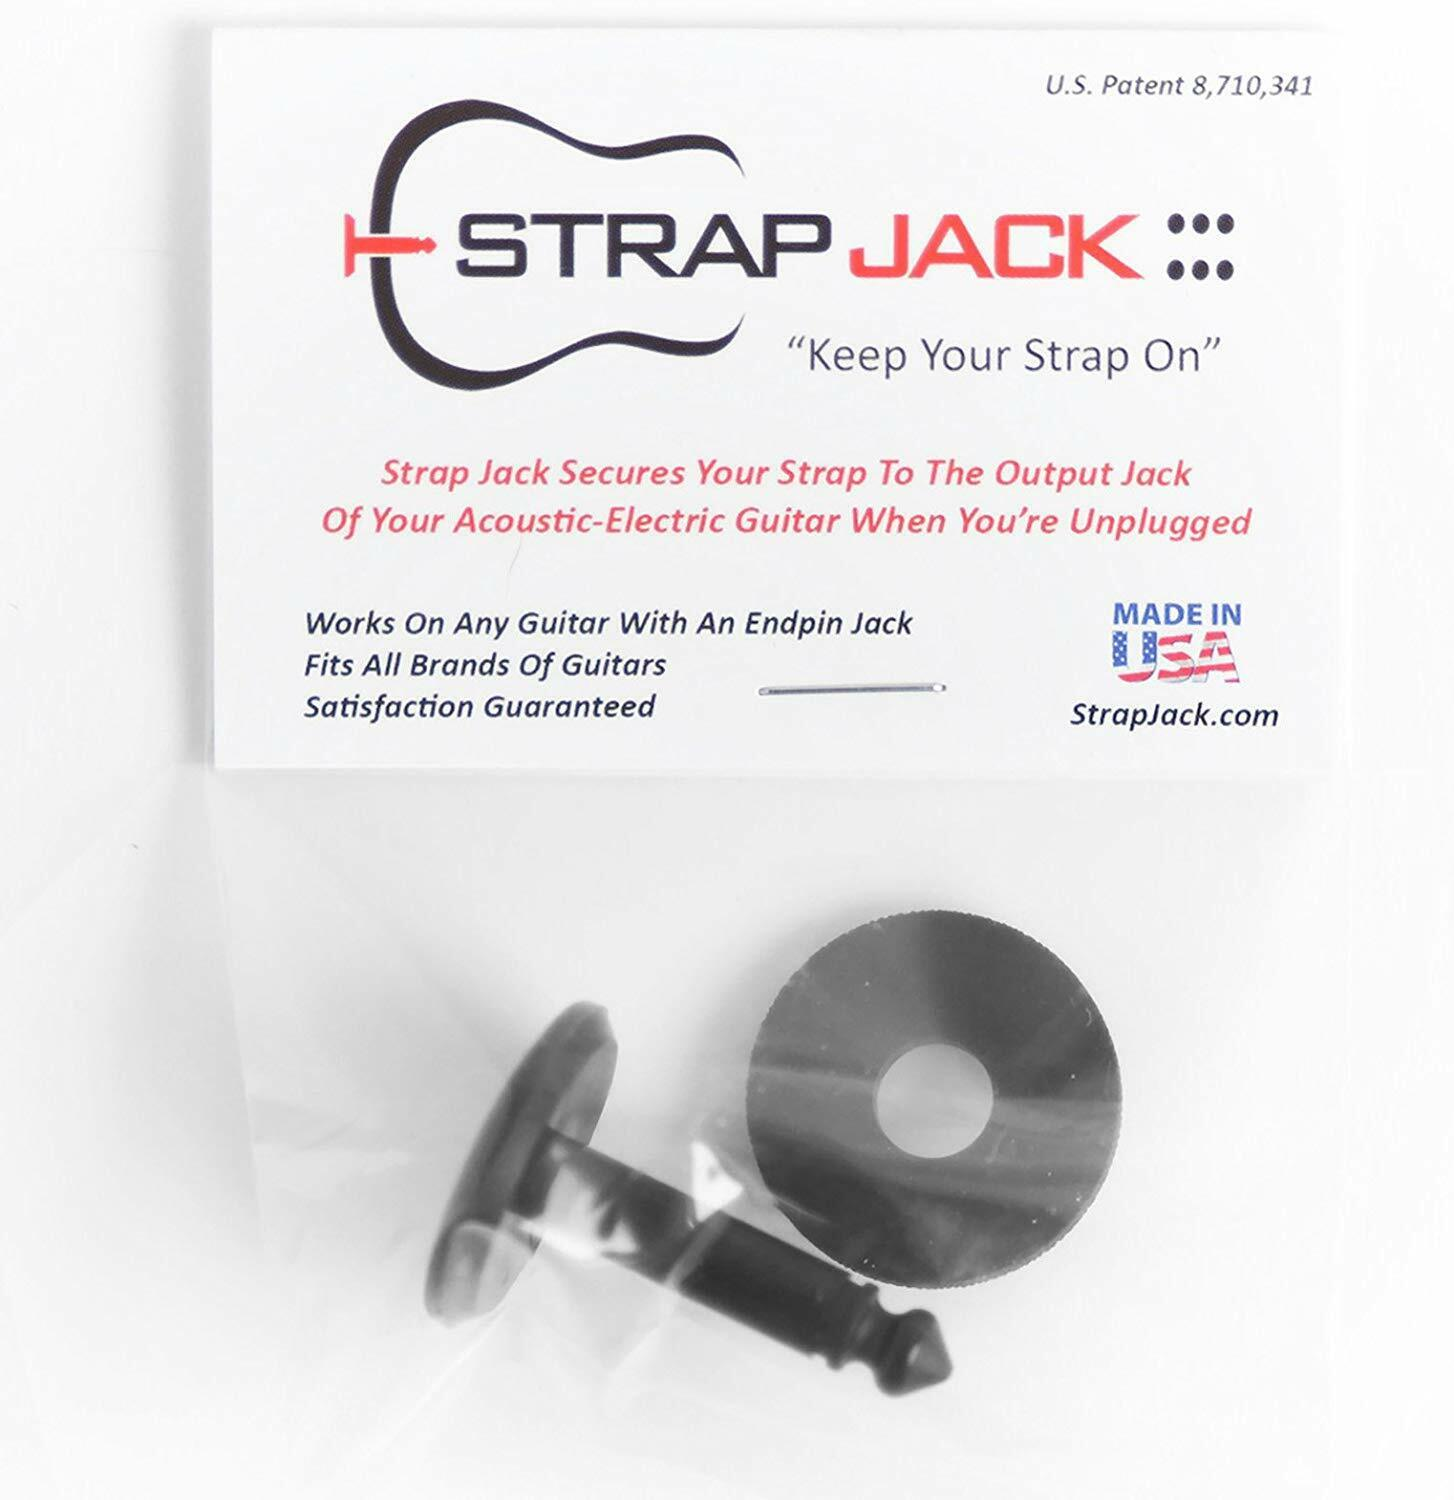 Strap Jack Guitar Strap Lock System For Acoustic - Electric